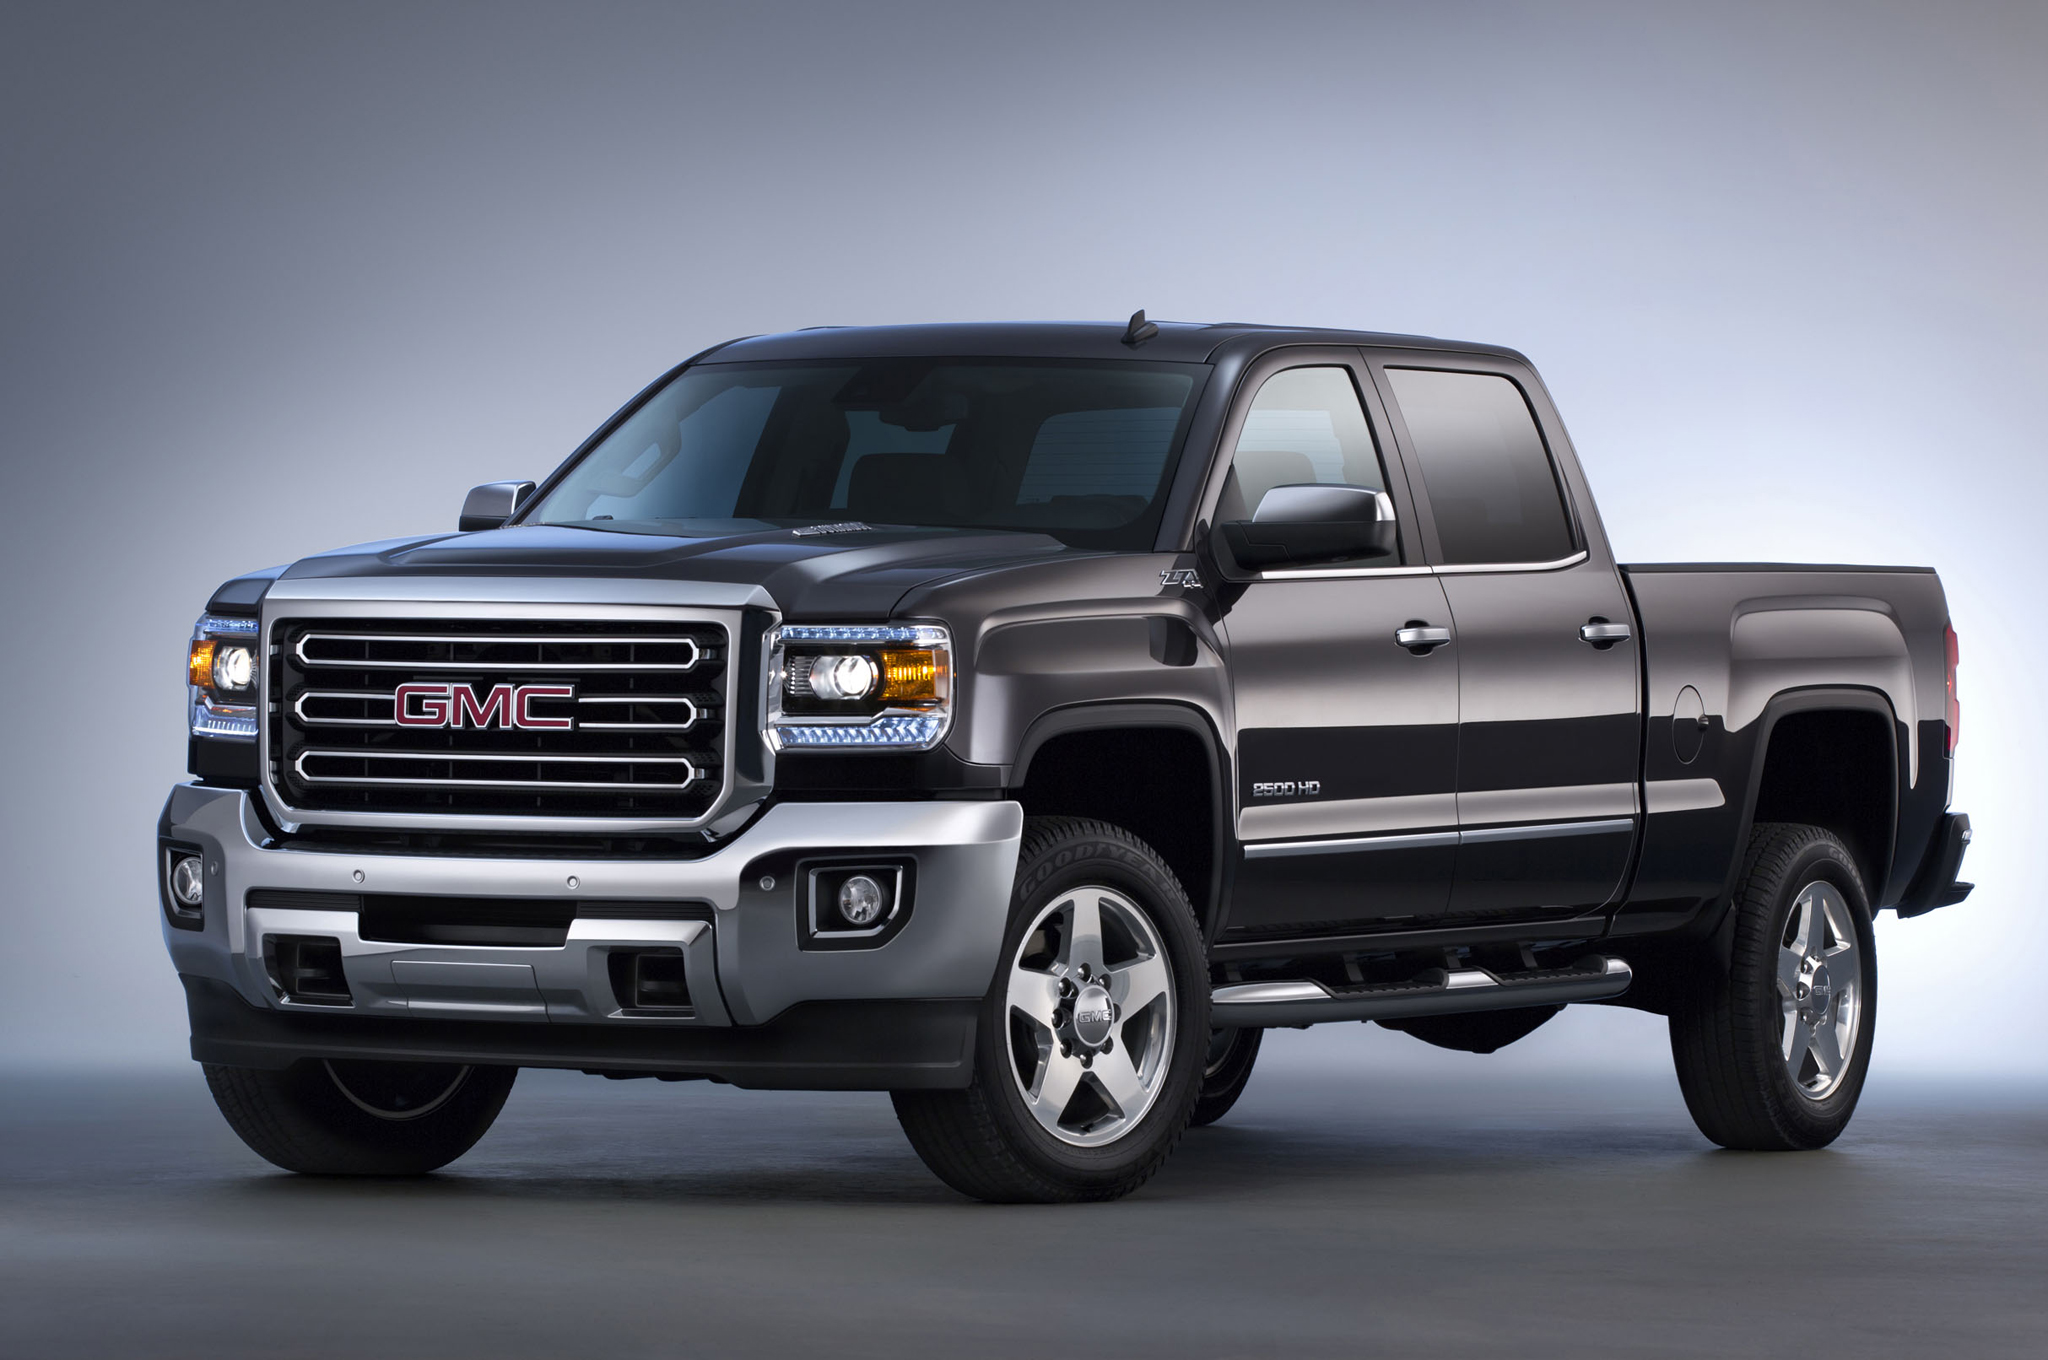 Gmc 2500hd photo - 2